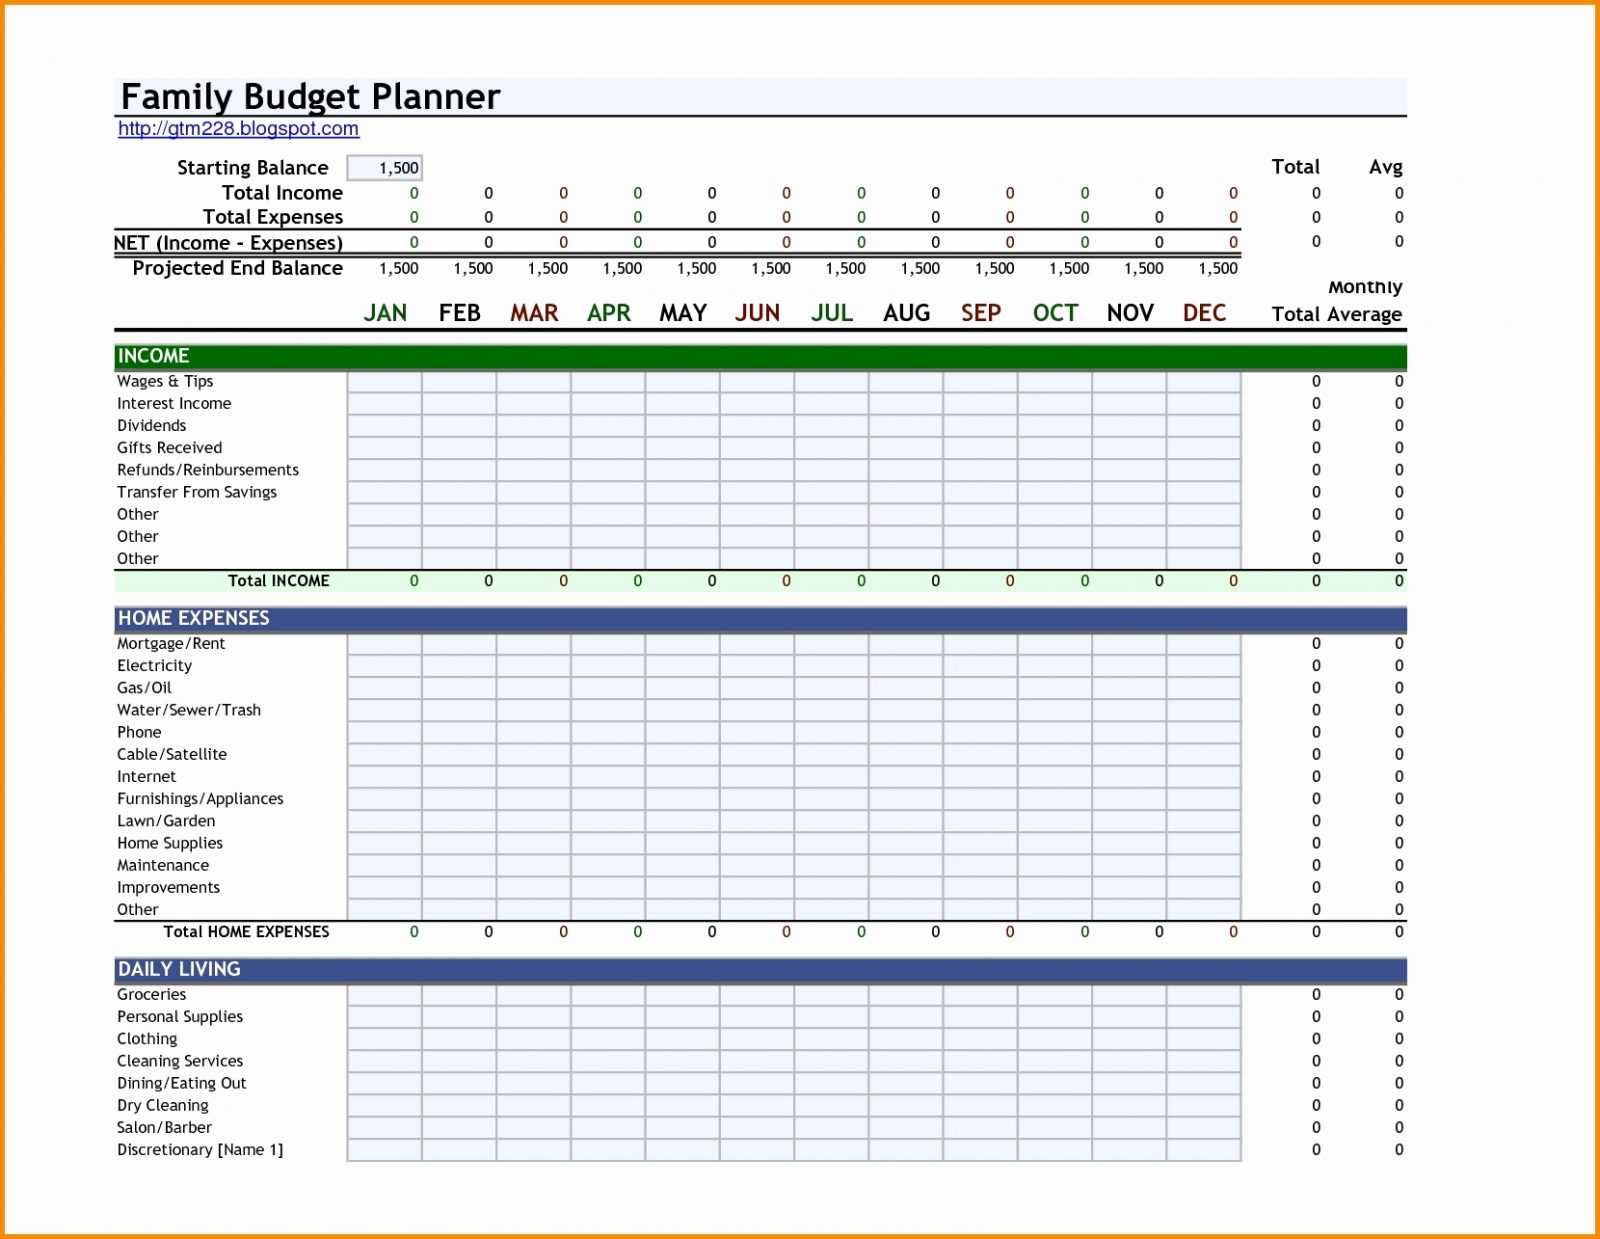 Monthly Budget Excel Spreadsheet Template Free With 13 Fresh Monthly Budget Excel Spreadsheet Template Free  Twables.site